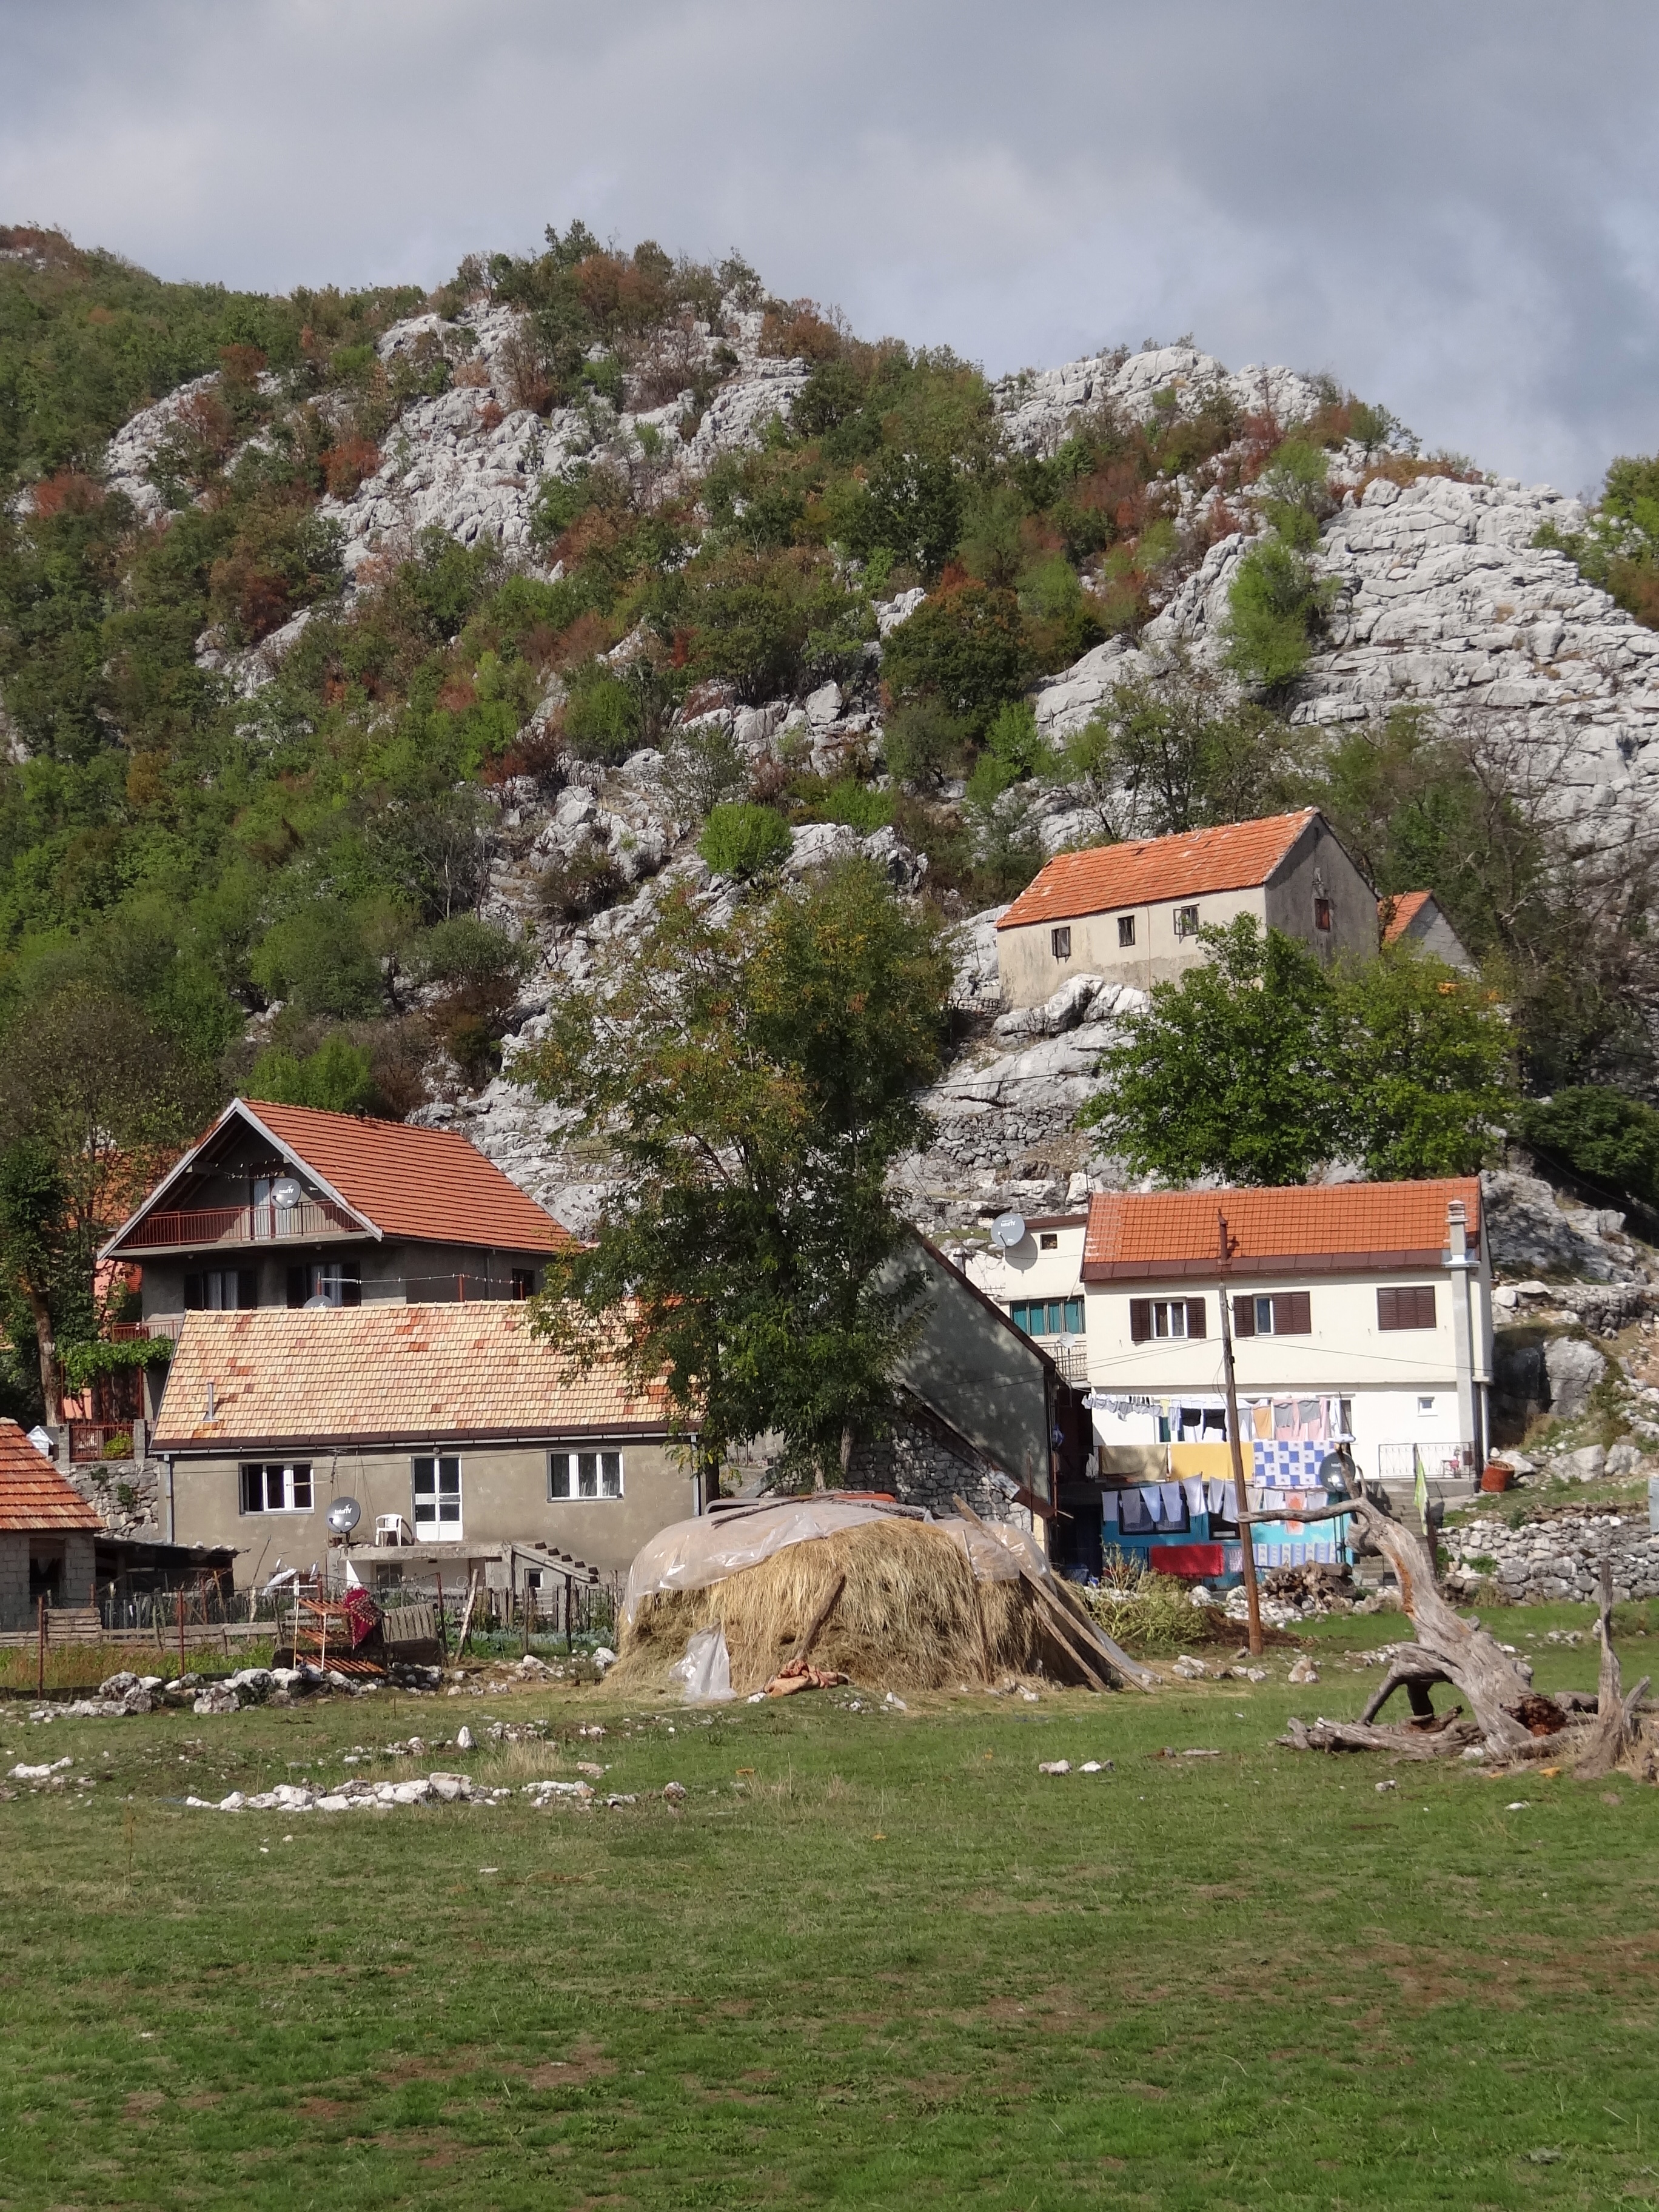 File:House and Gardens with Stony Mountain Backdrop - Cetinje ...